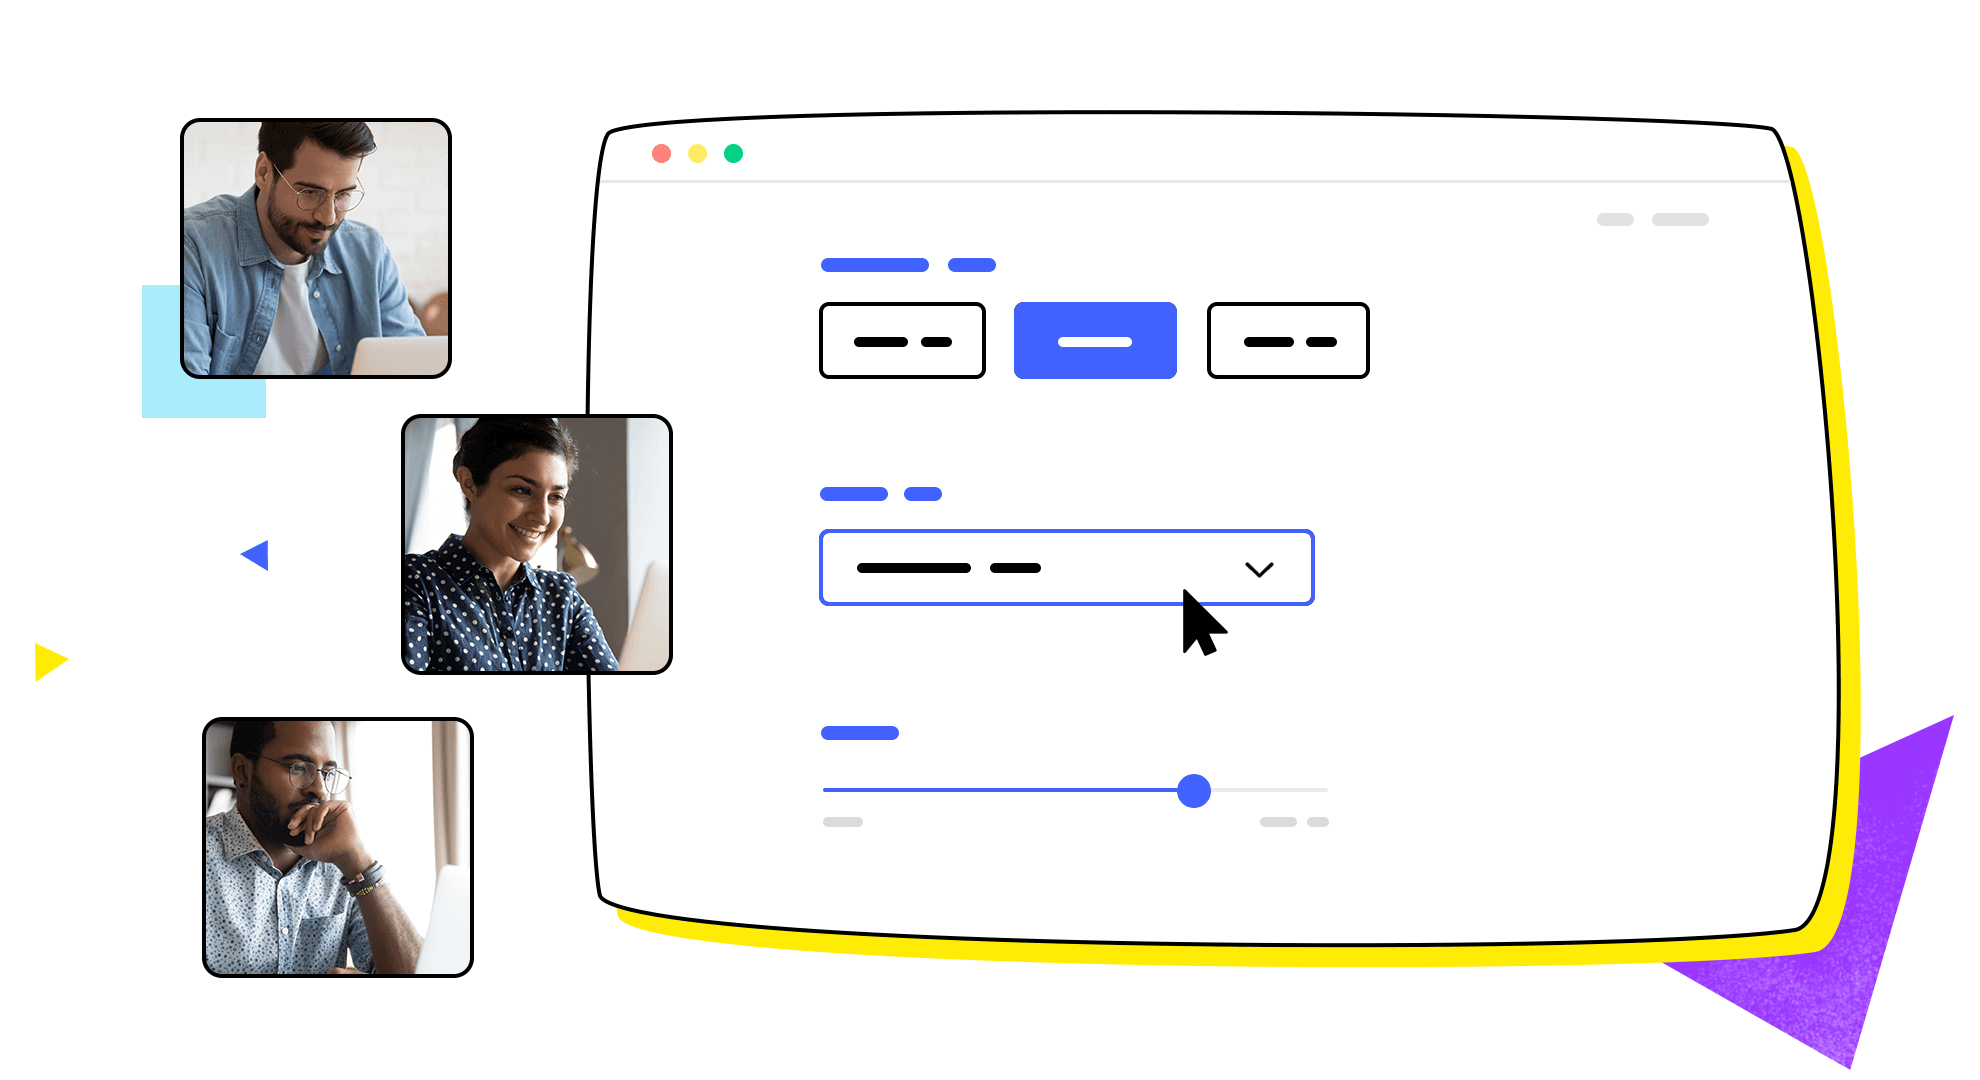 ux design tool for product design